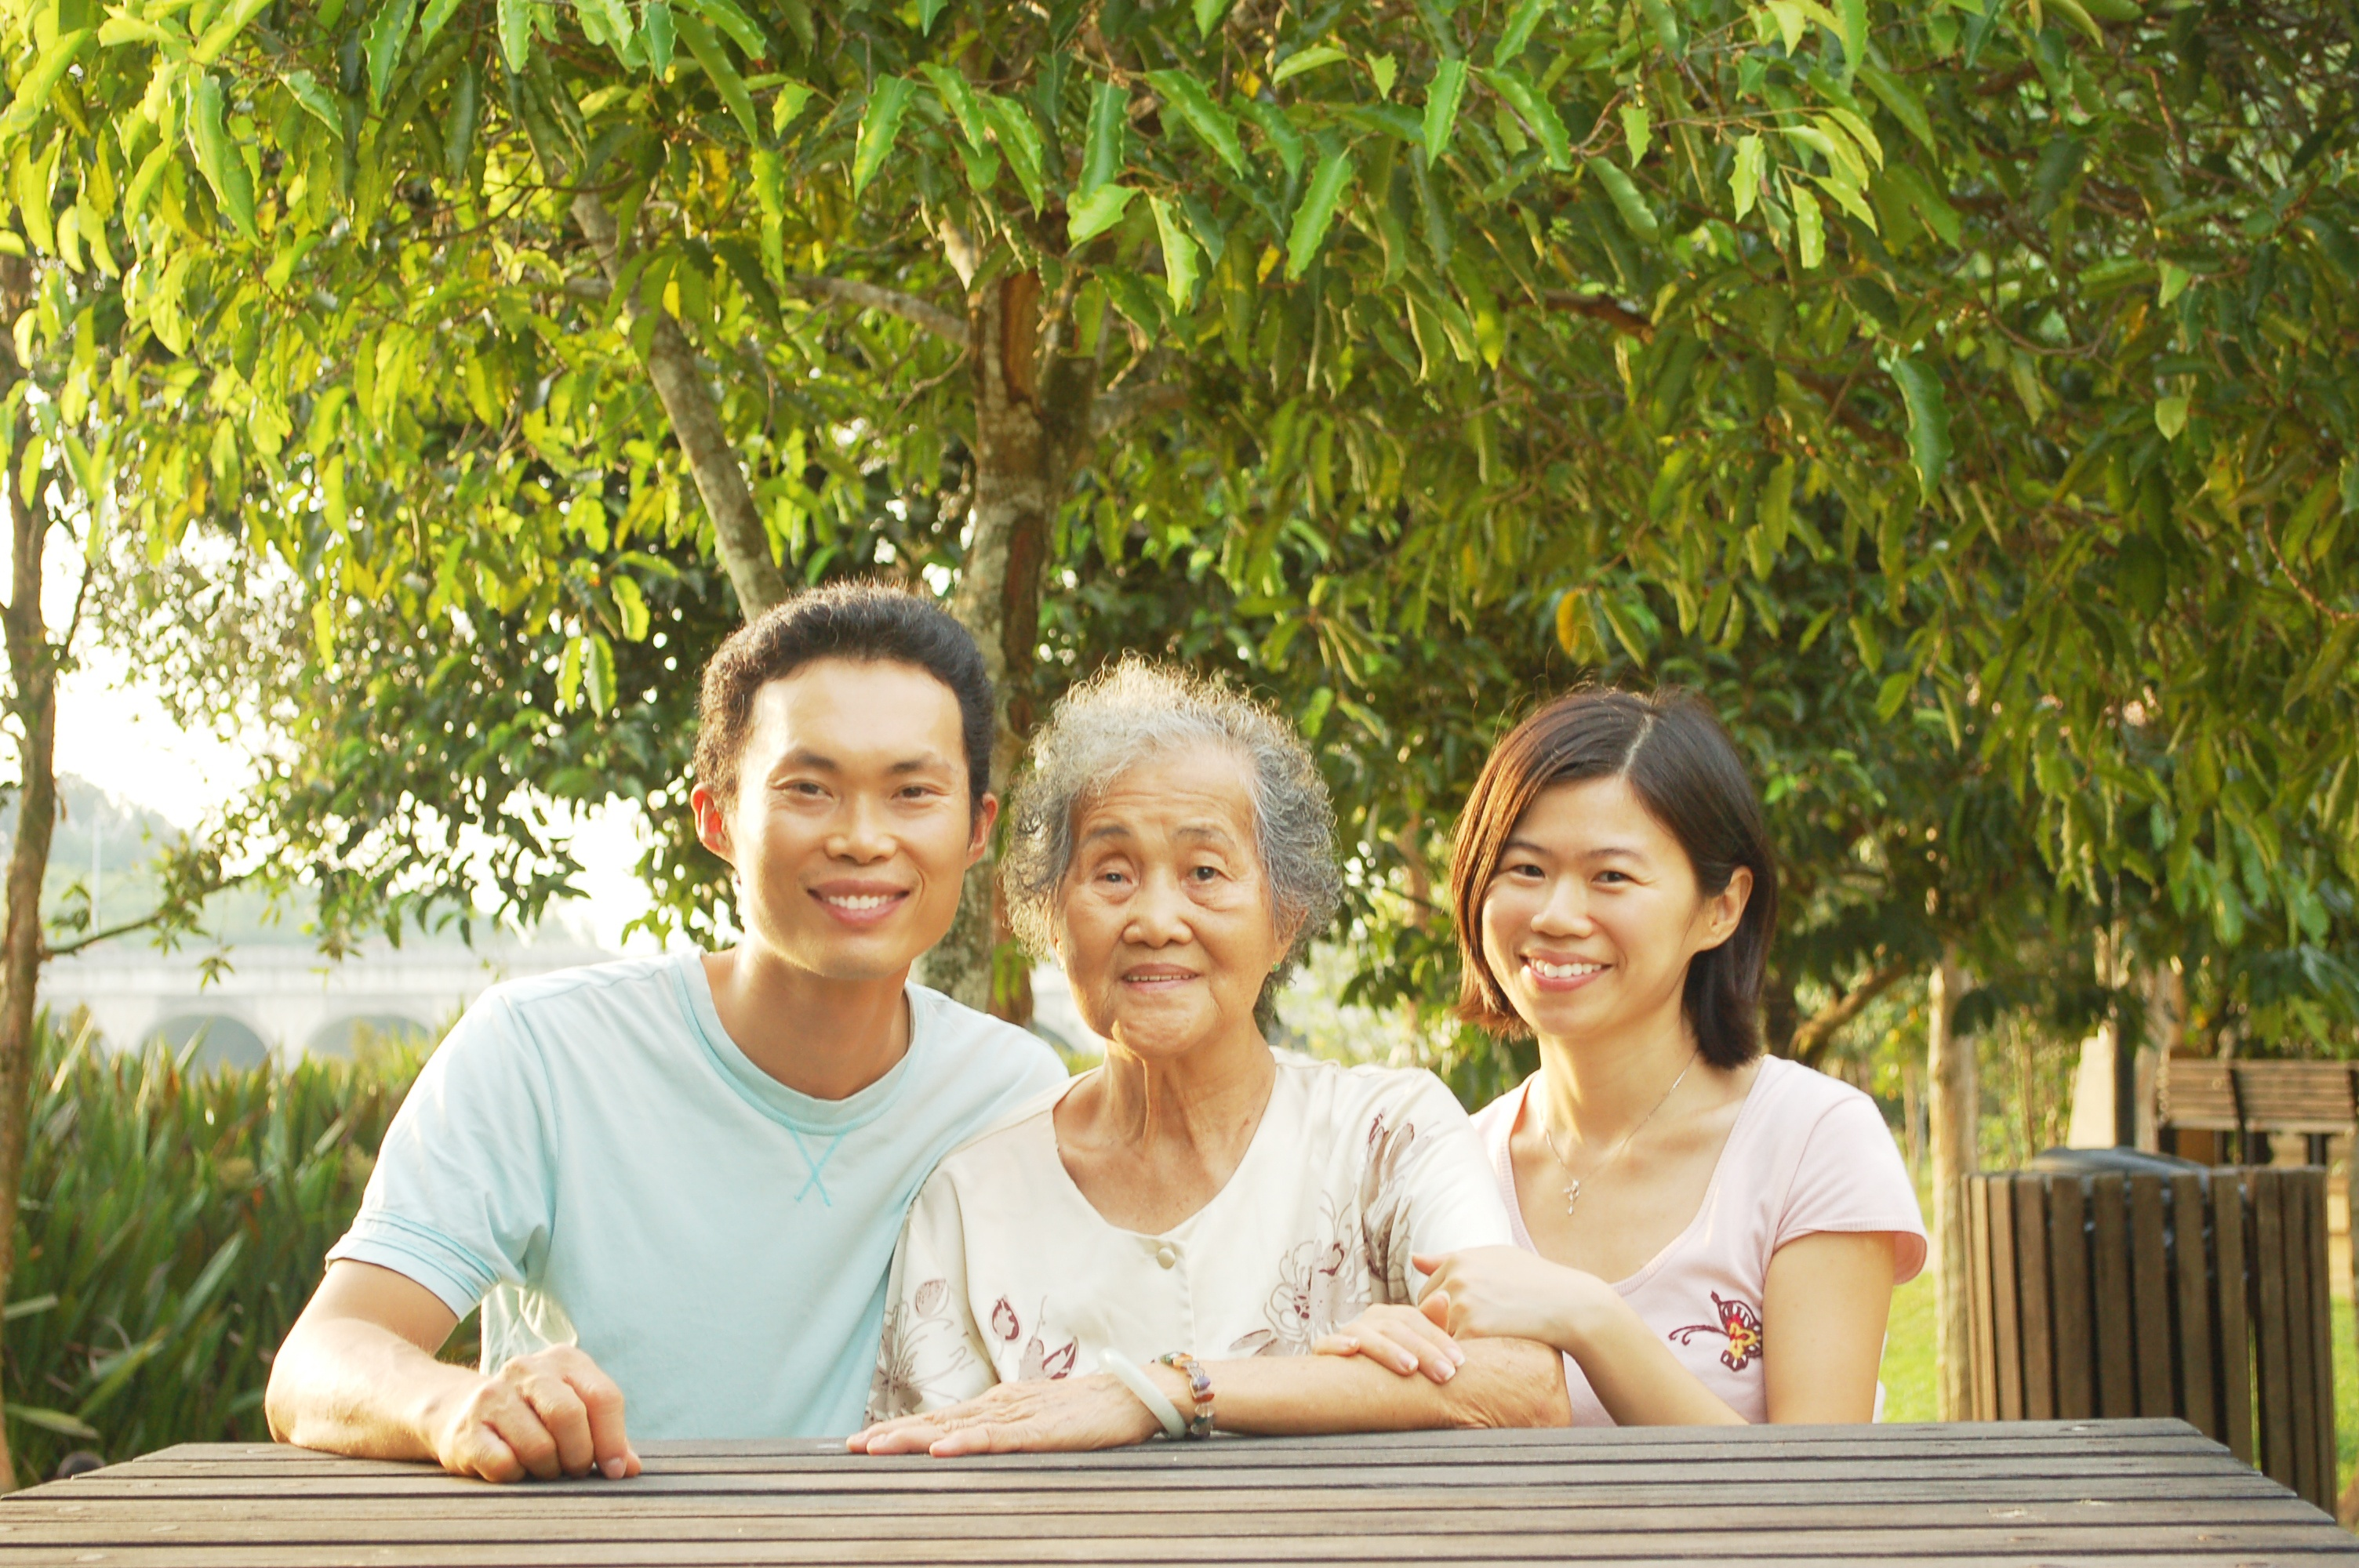 CaregiverAsia stories inspire Apple to embark on her caregiving journey